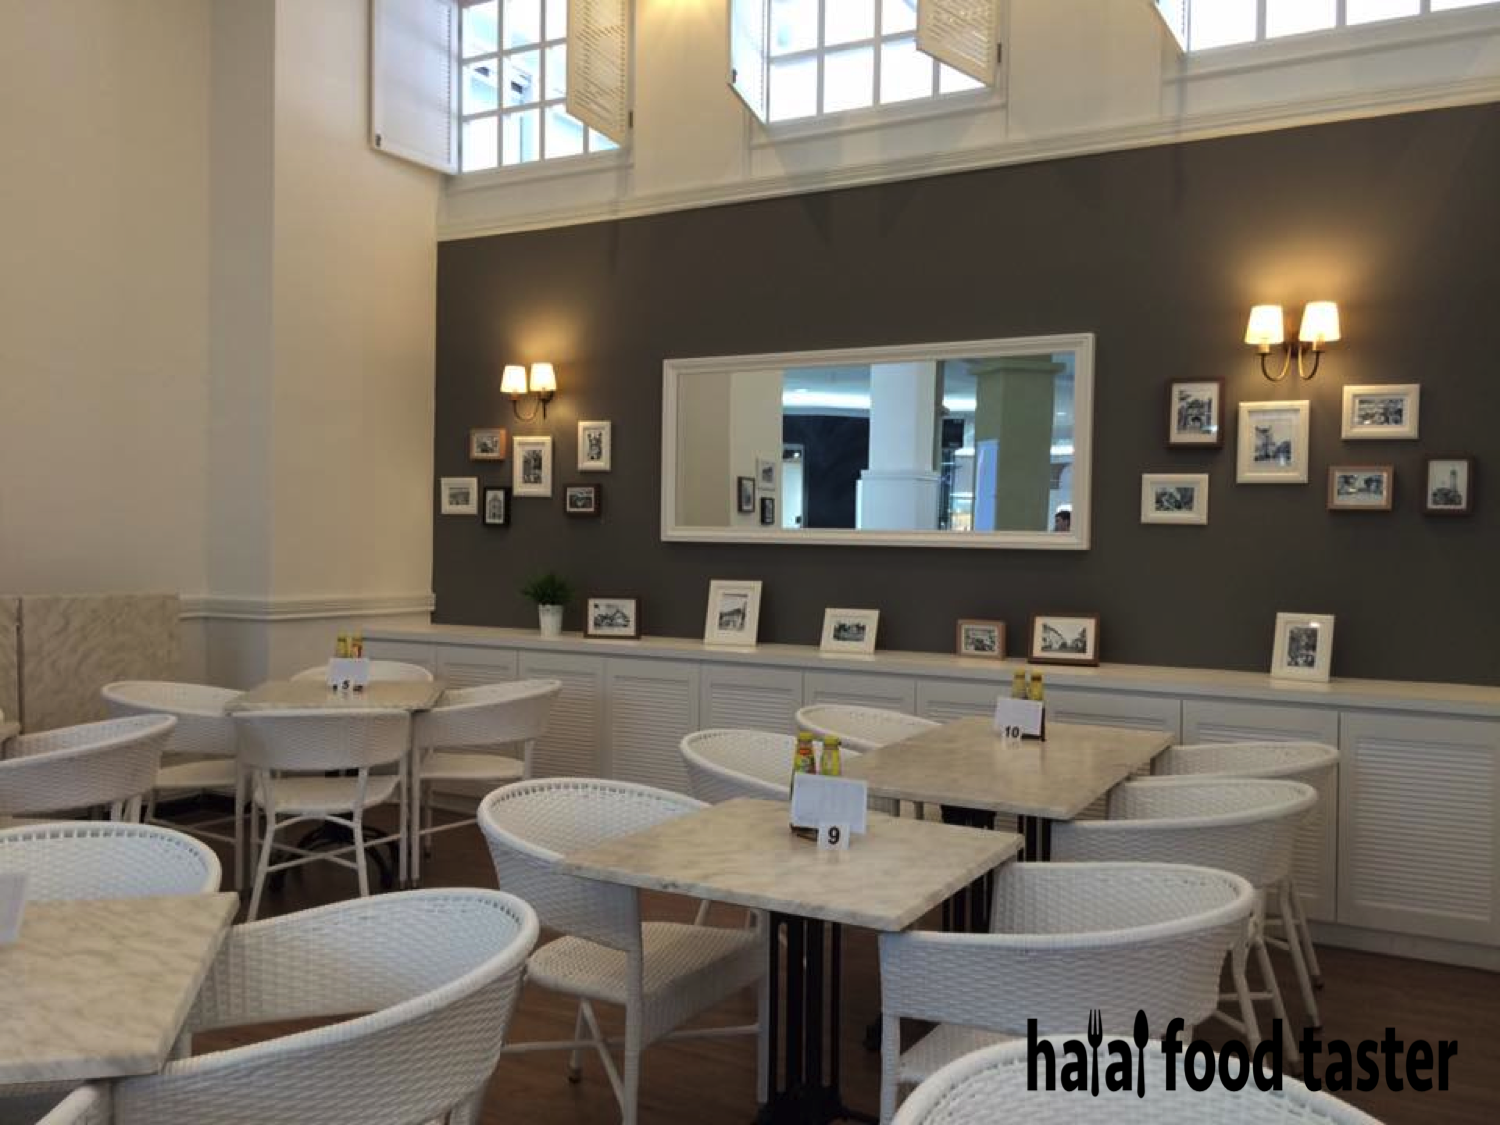 Tappers Cafe Dataran Pahlawan Halal Recipes Cafe Halal